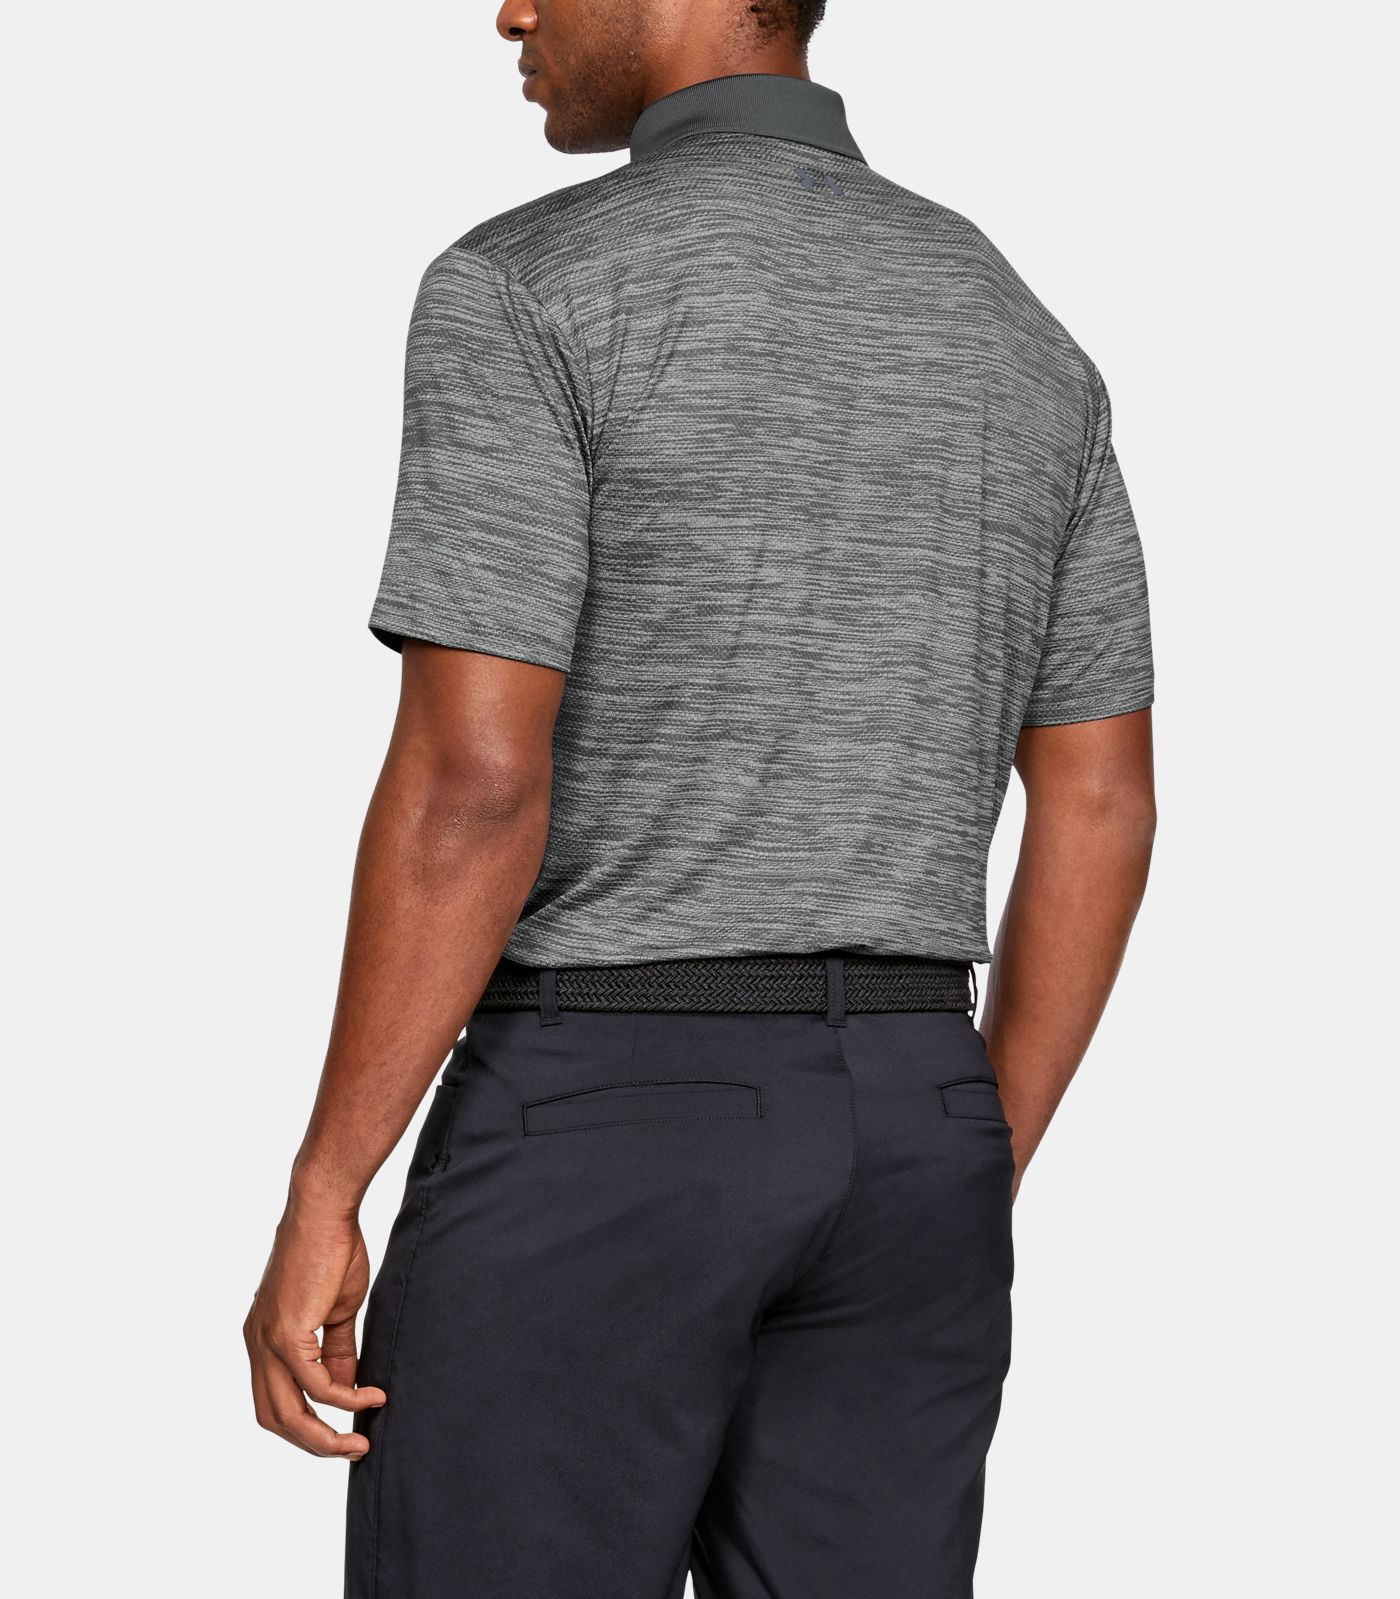 MENS_POLO_PerformanceTextured_UAR1342080035_02